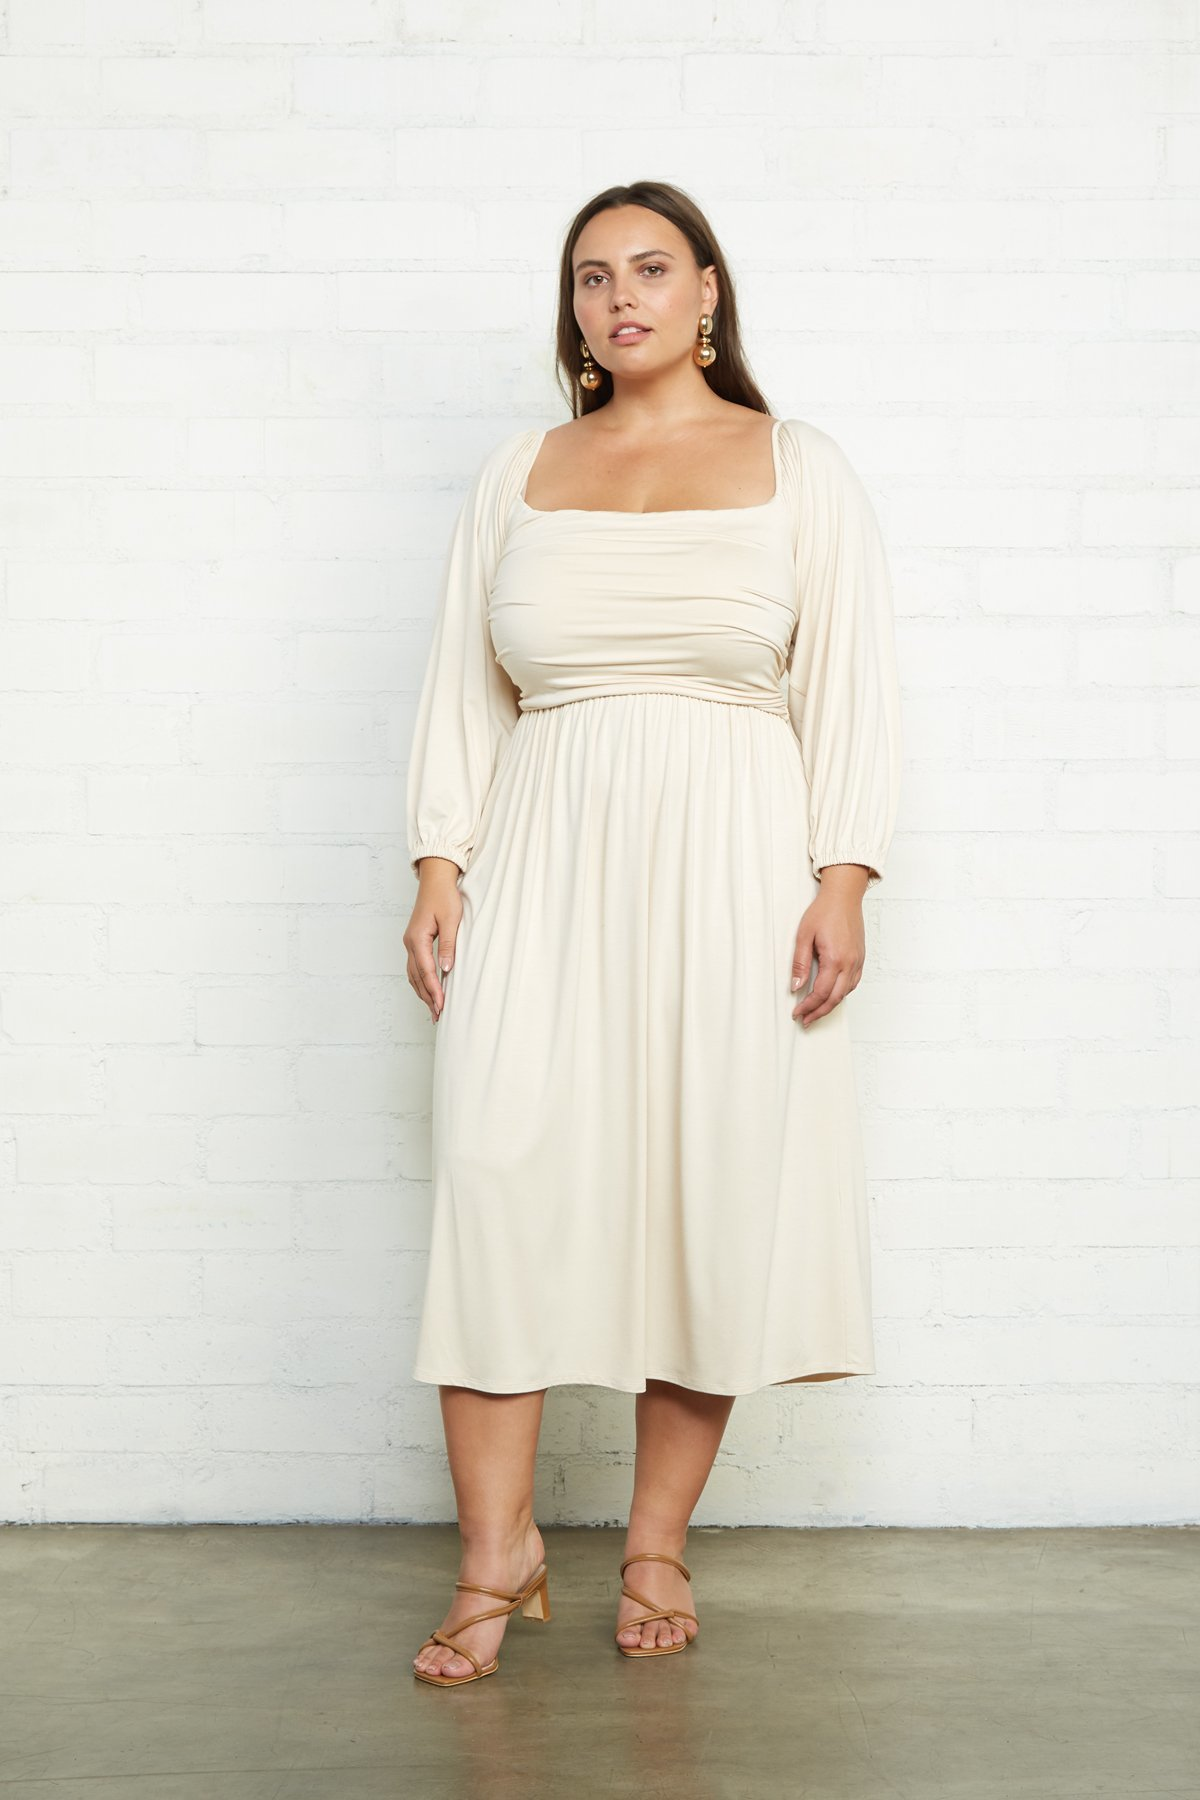 Rachel Pally Dory Plus Size Dress - Cream